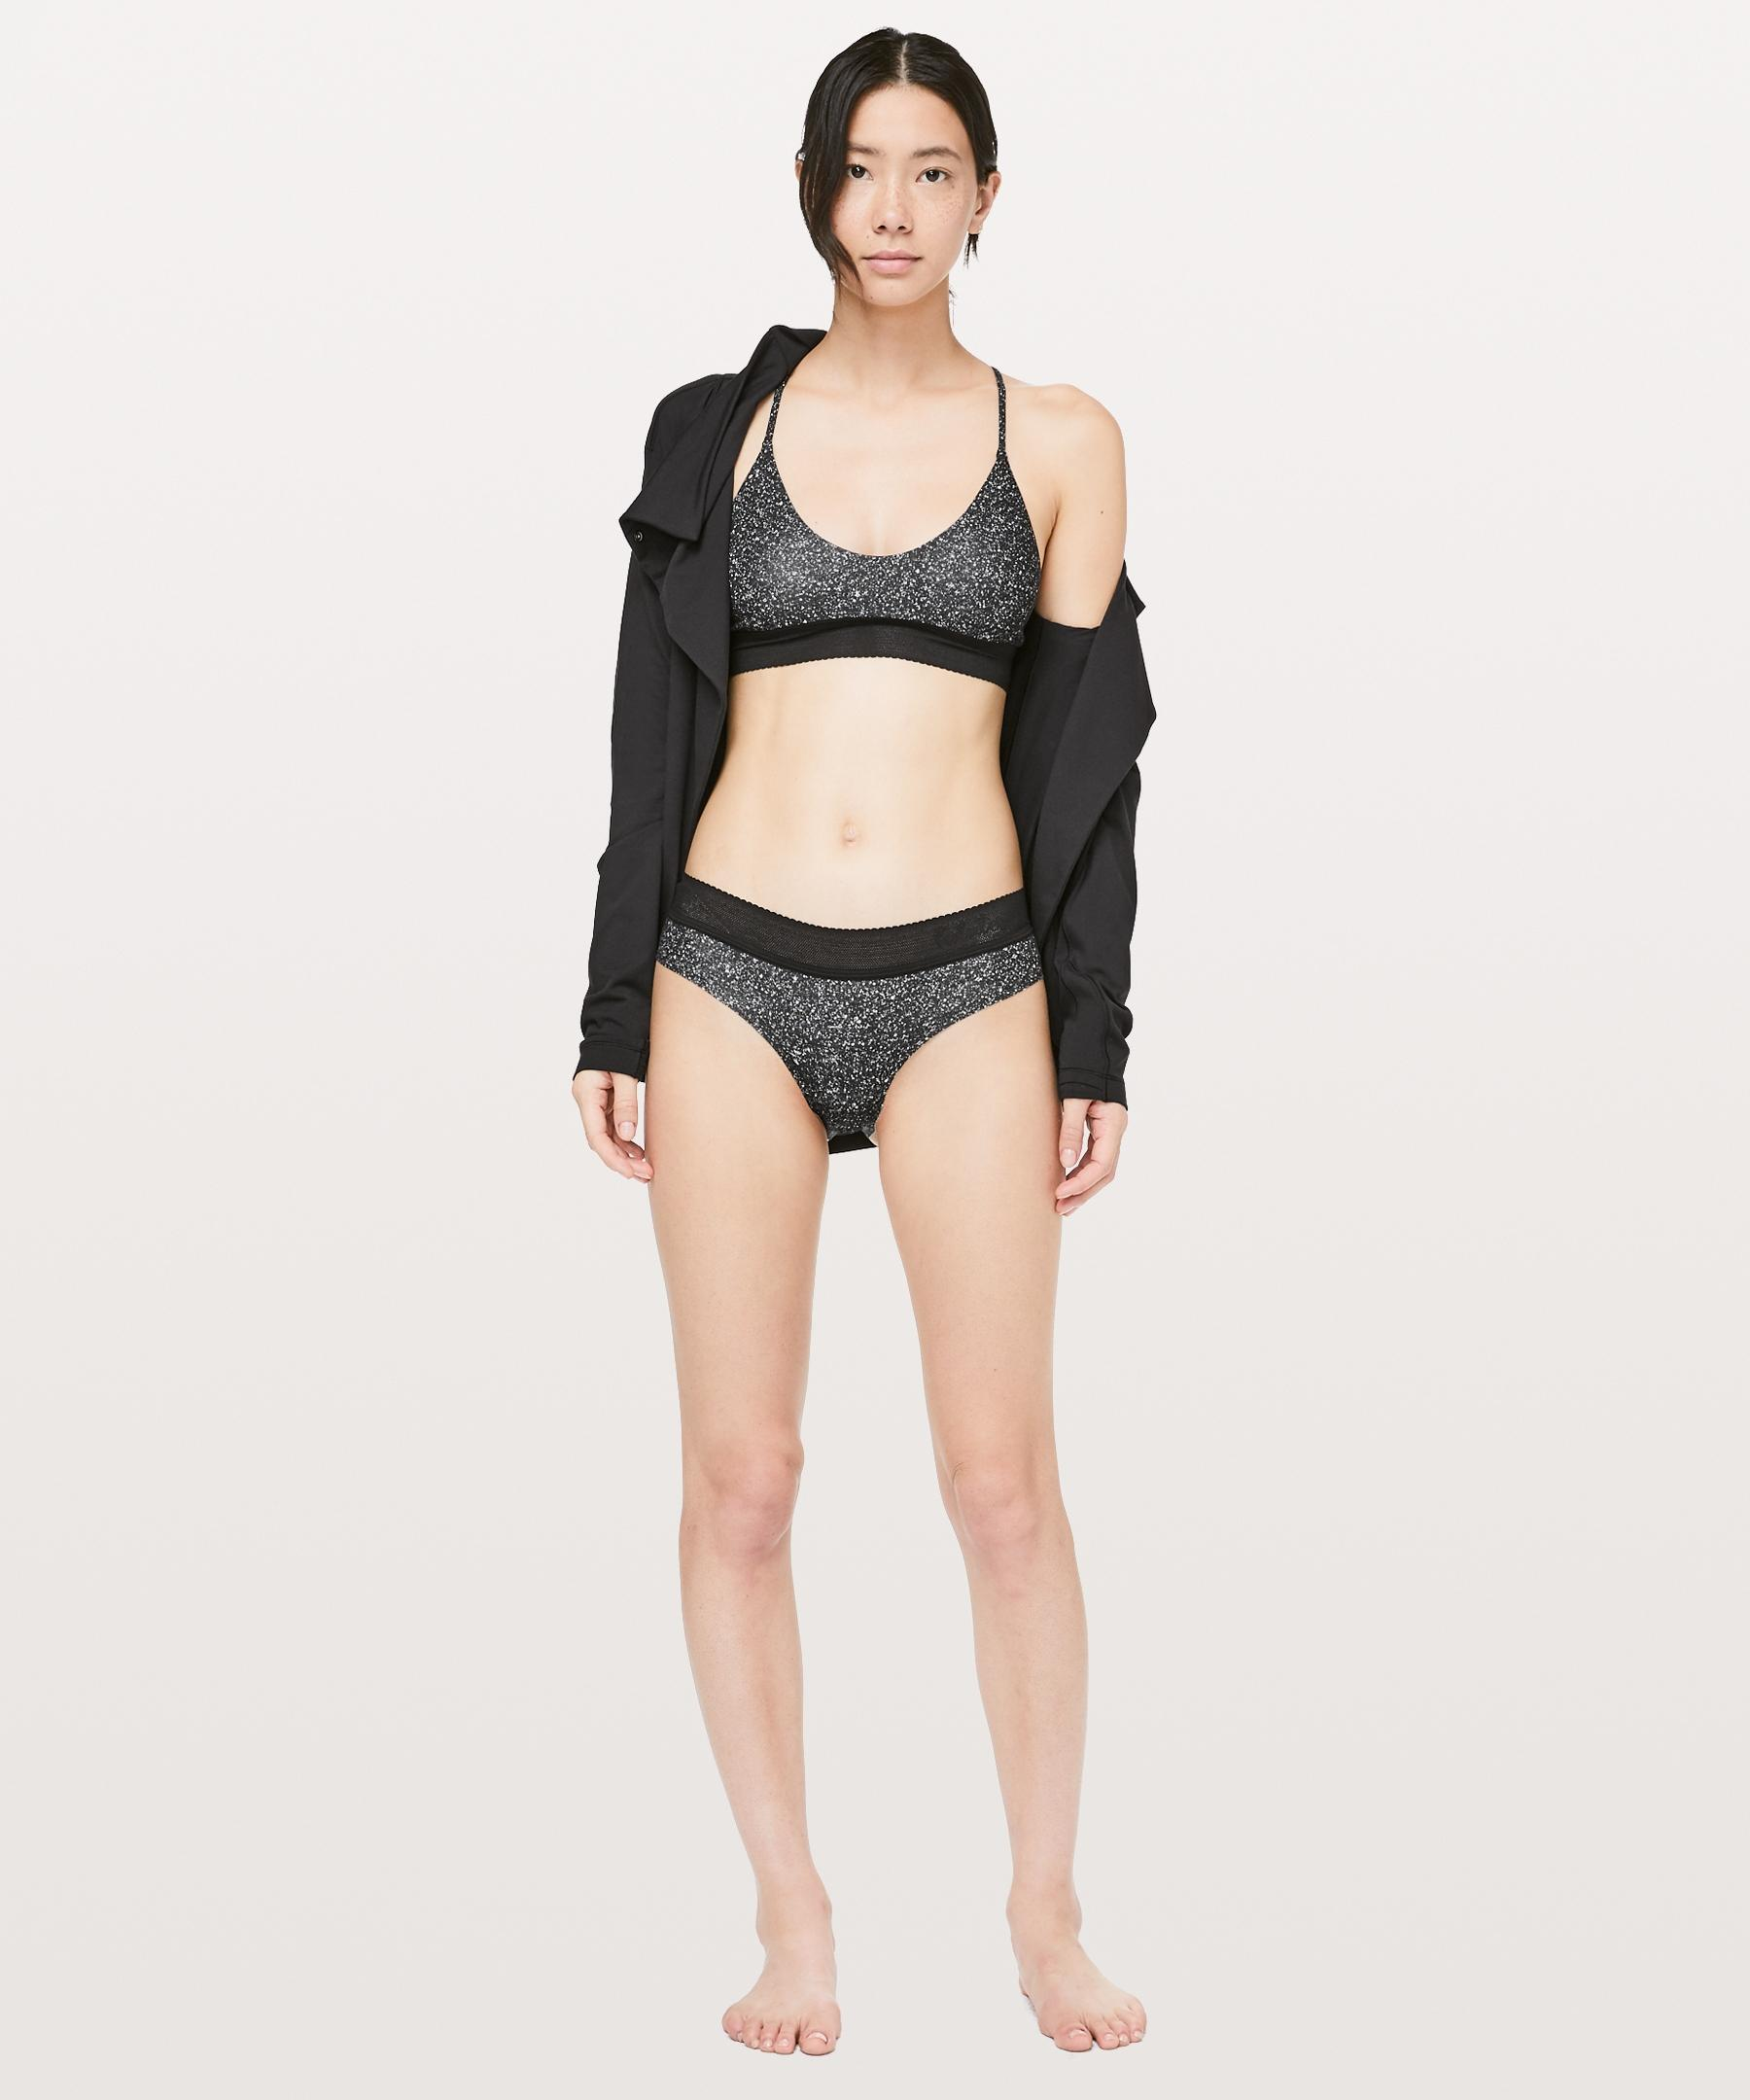 f2efb102a7528 Lyst - lululemon athletica Ever Essentials Bralette in Black